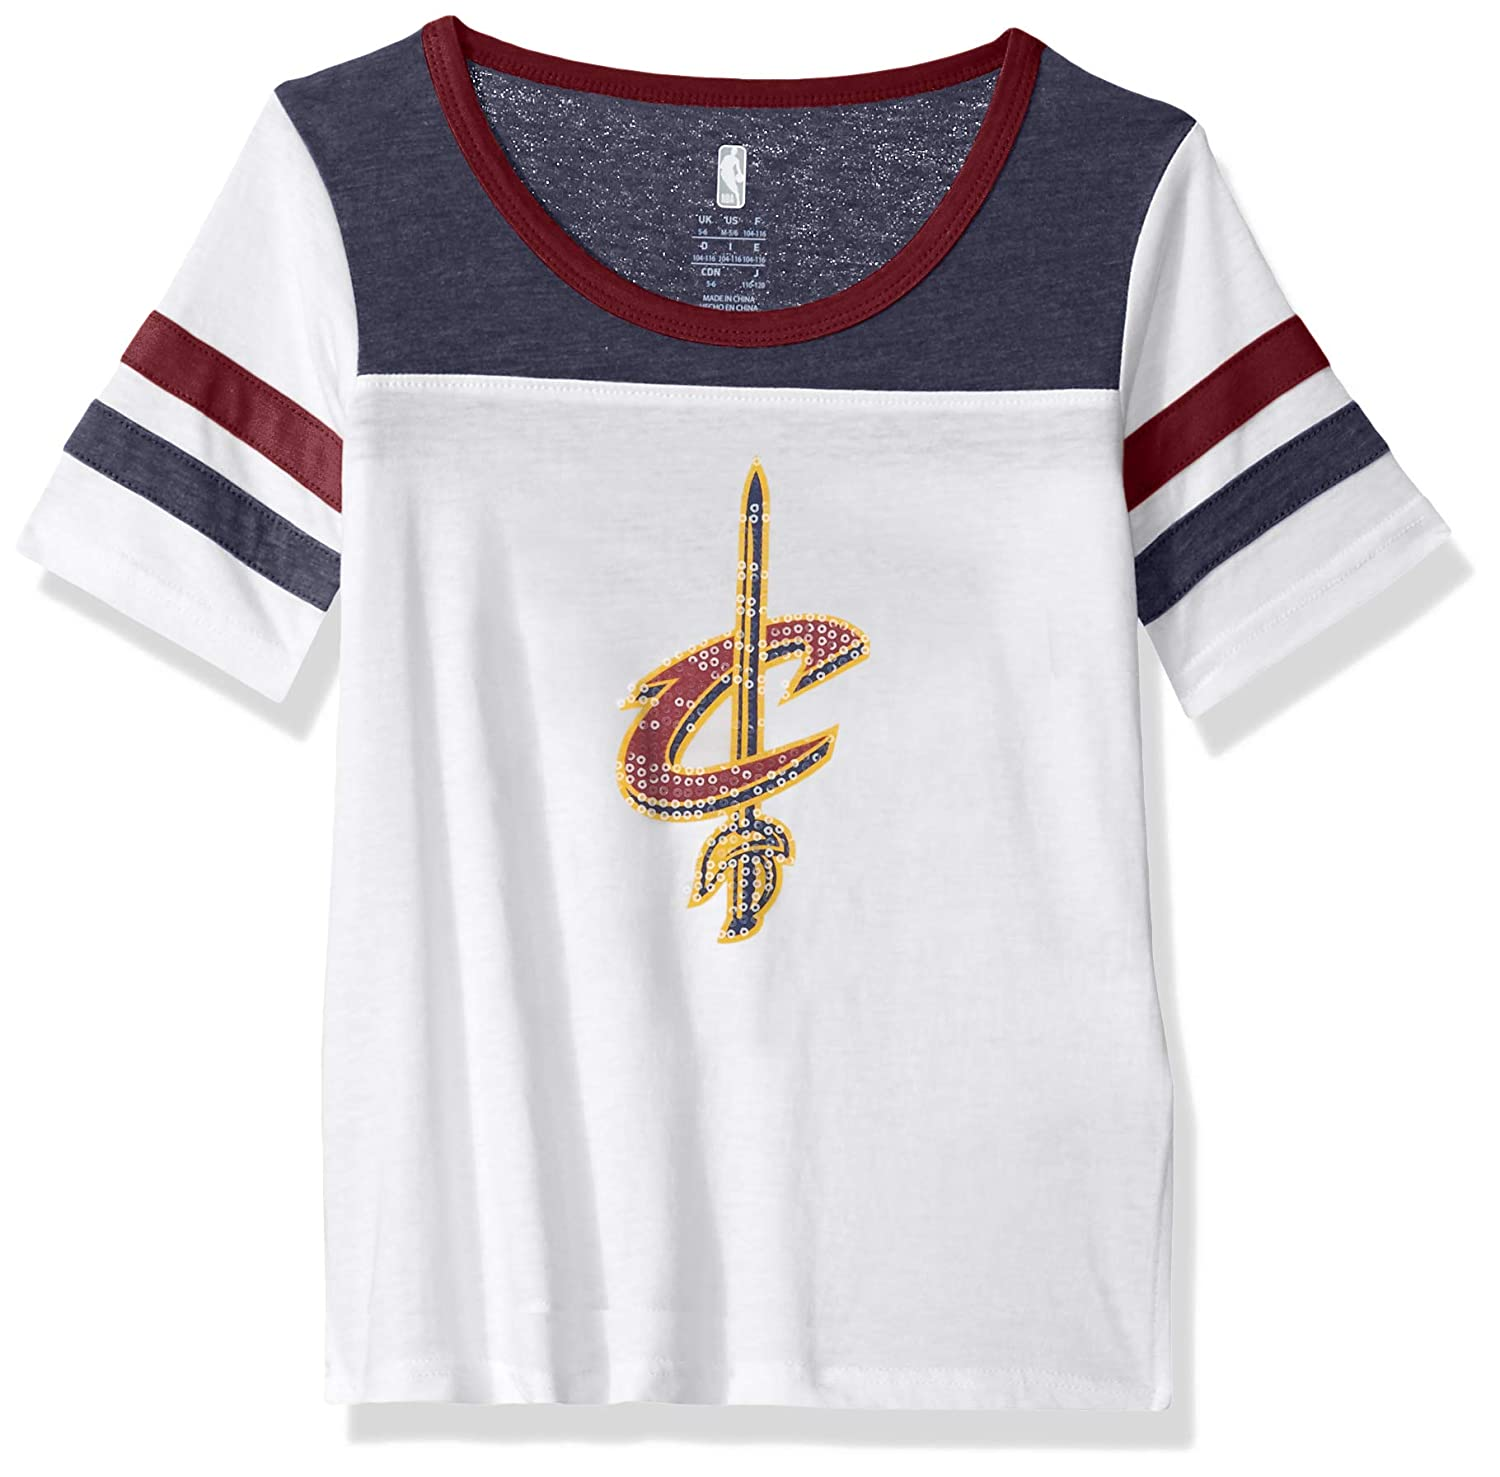 Youth Small NBA by Outerstuff NBA Kids /& Youth Girls Cleveland Cavaliers Point Guard Short Sleeve Tee White 7-8